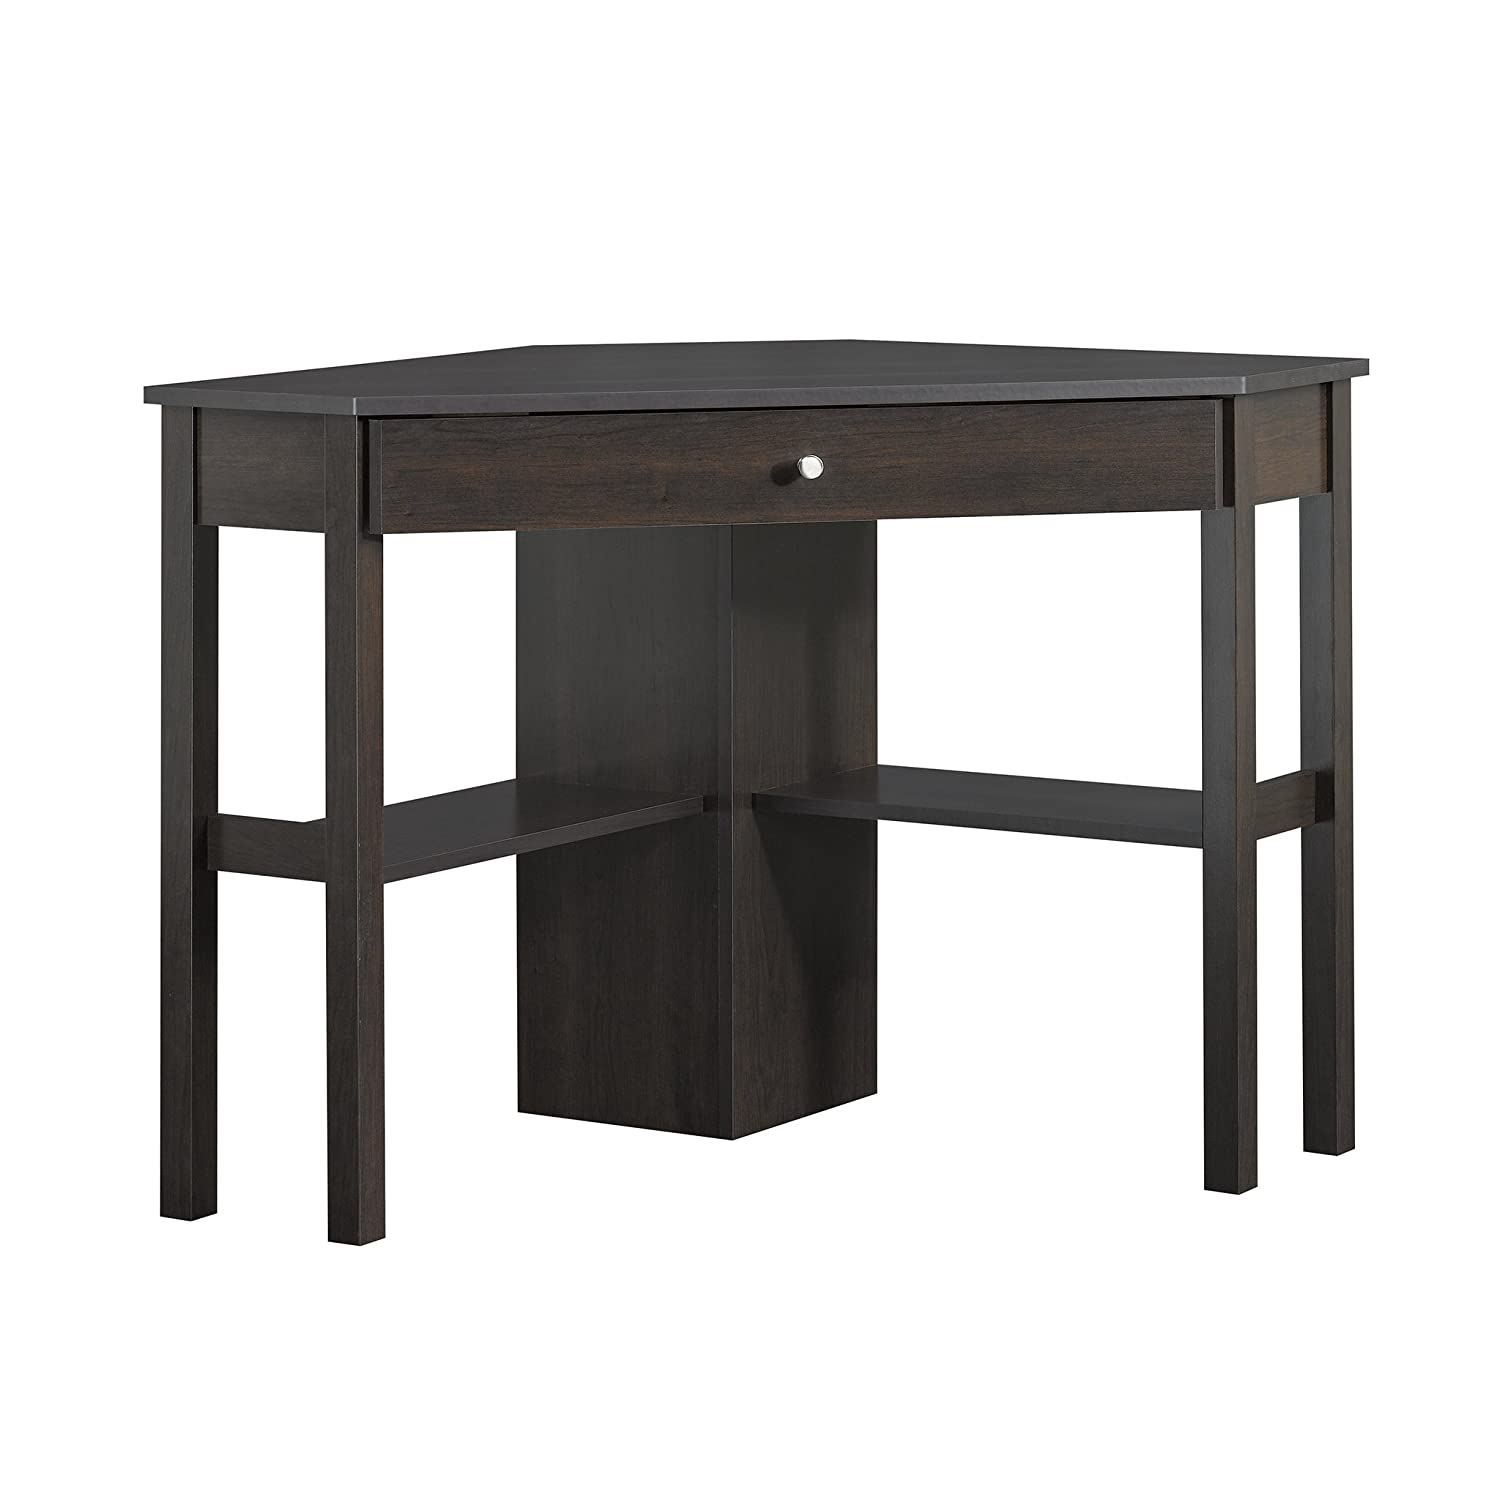 Sauder Beginnings Corner Computer Desk, Cherry by Sauder